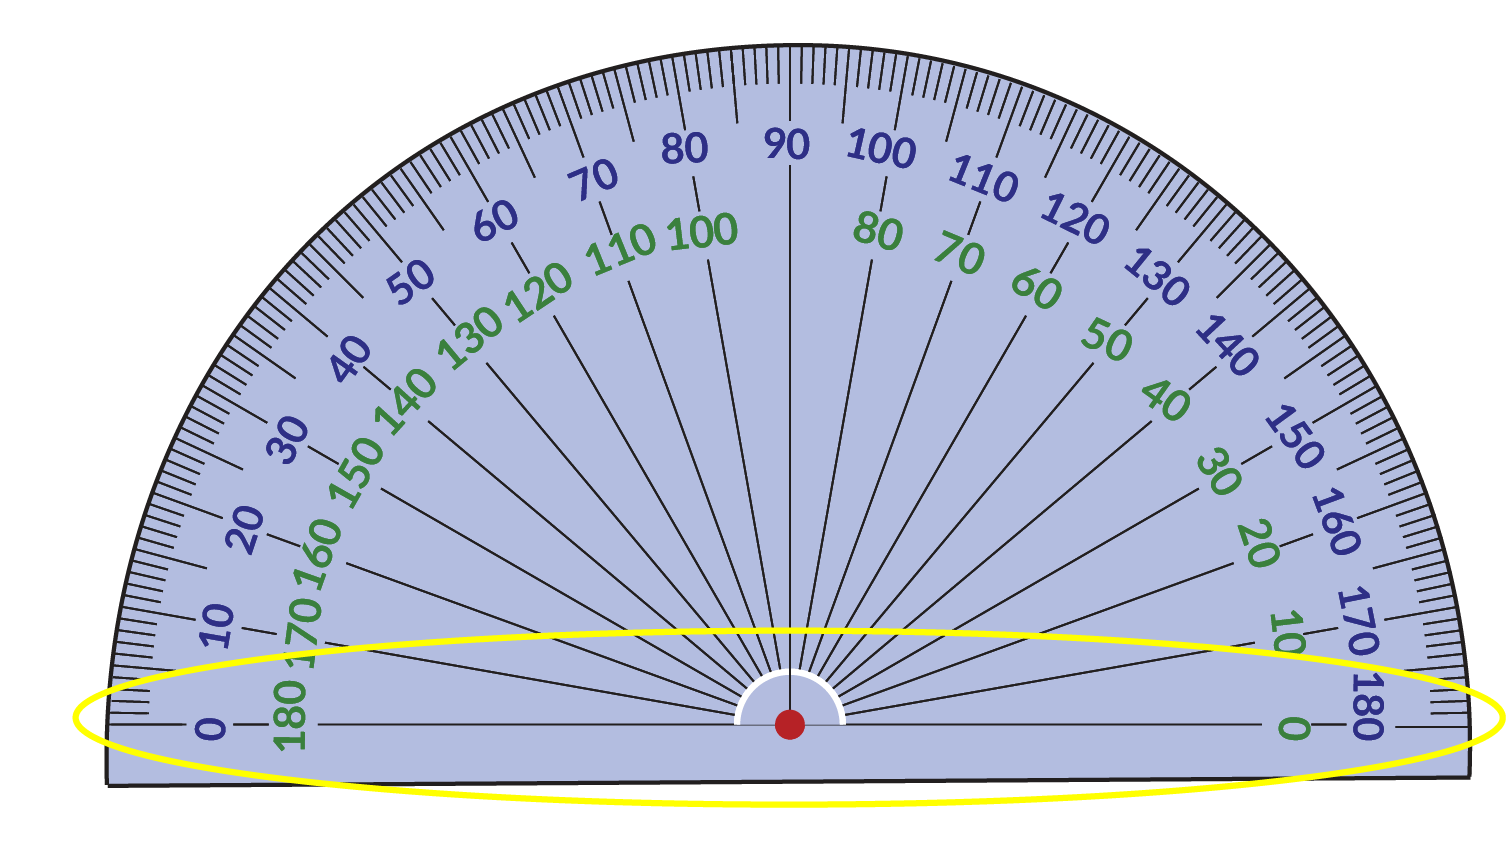 A protractor placed on the baseline exactly along the angle to be measured.